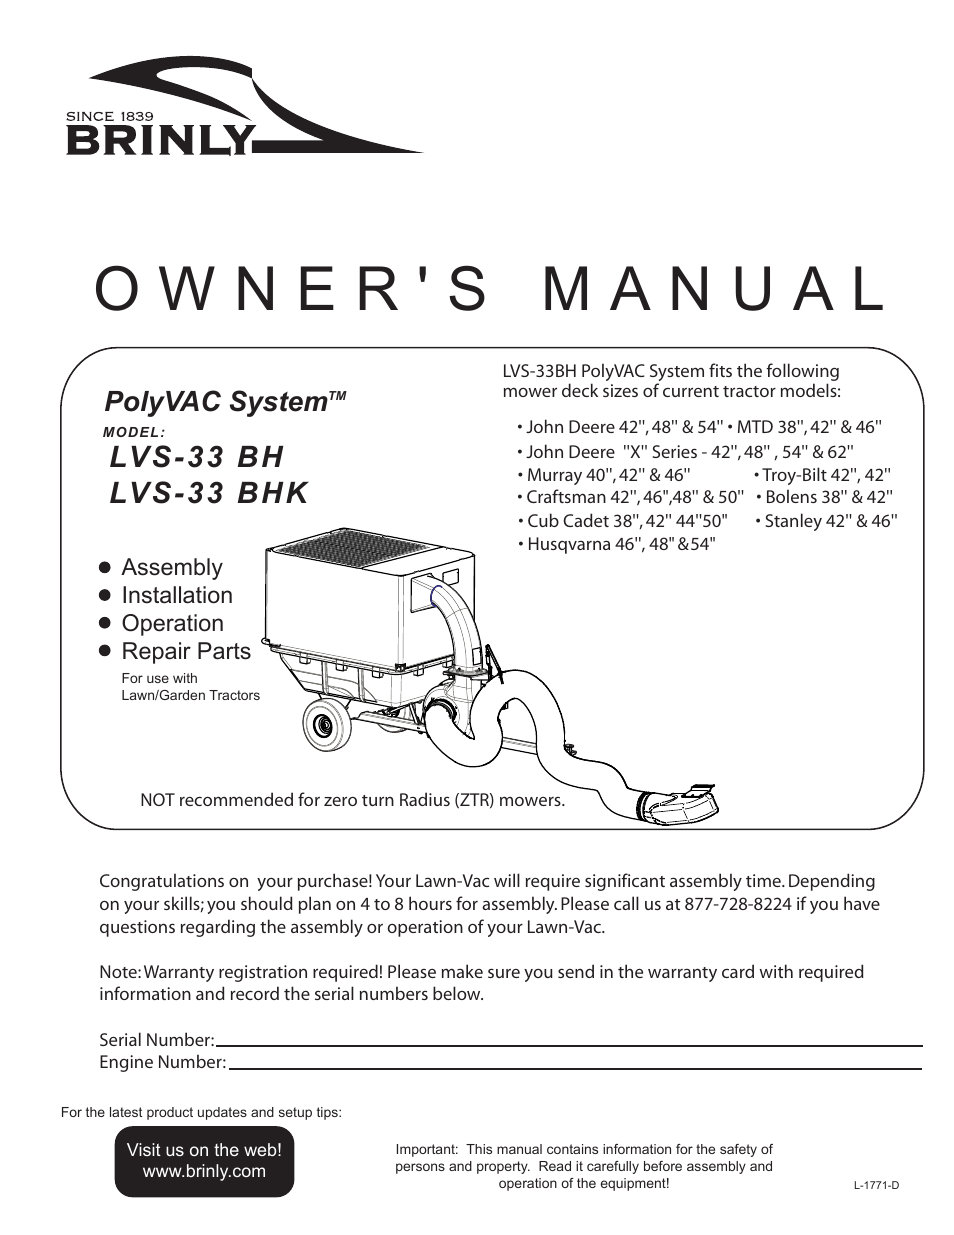 Brinly LVS-33 BH PolyVAC System User Manual | 32 pages | Also for